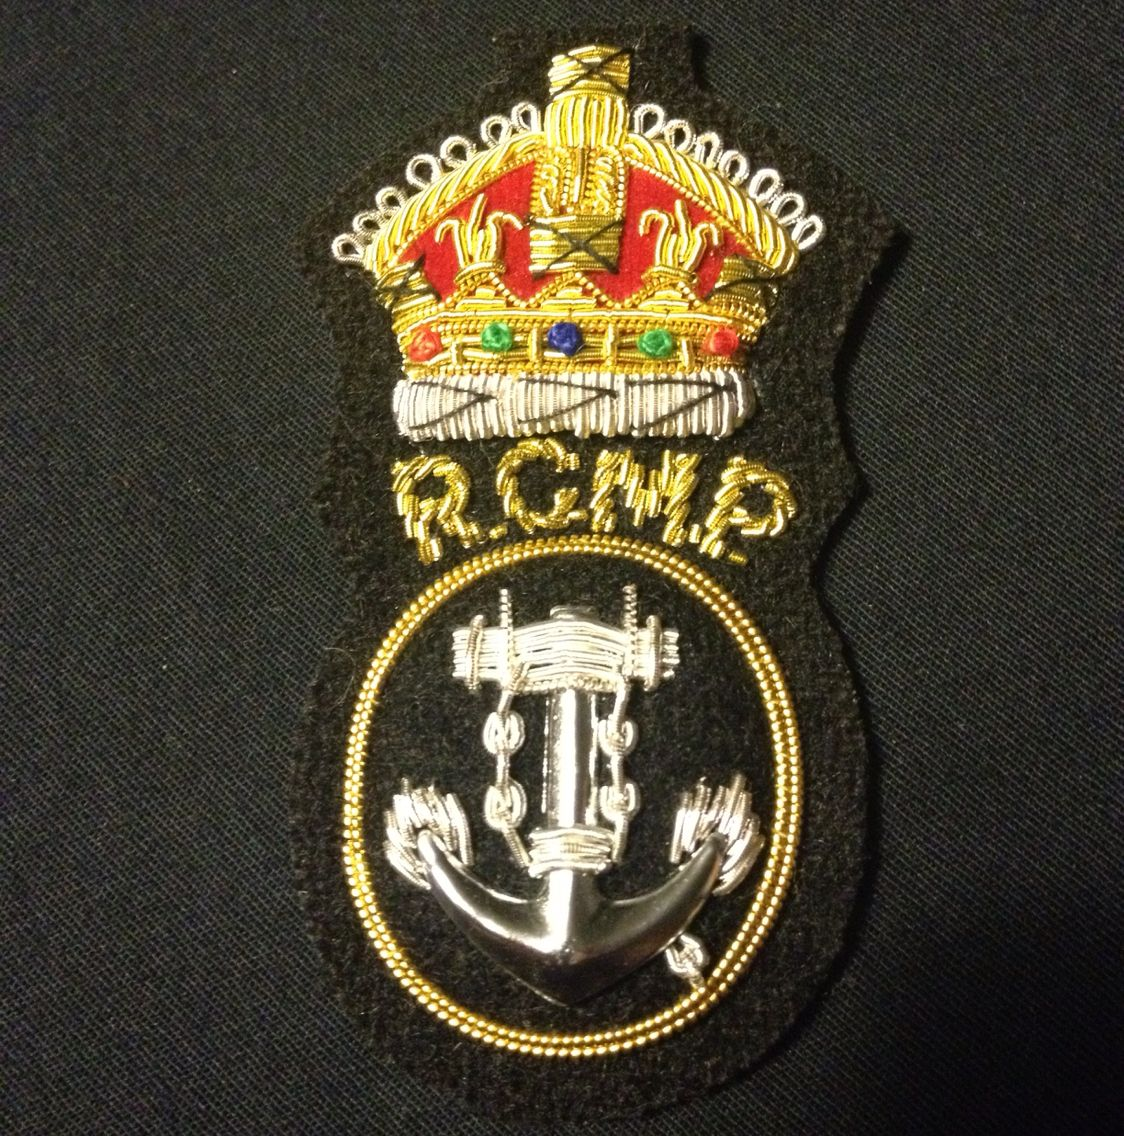 RCMP marine unit Canadian military, Police badge, Police